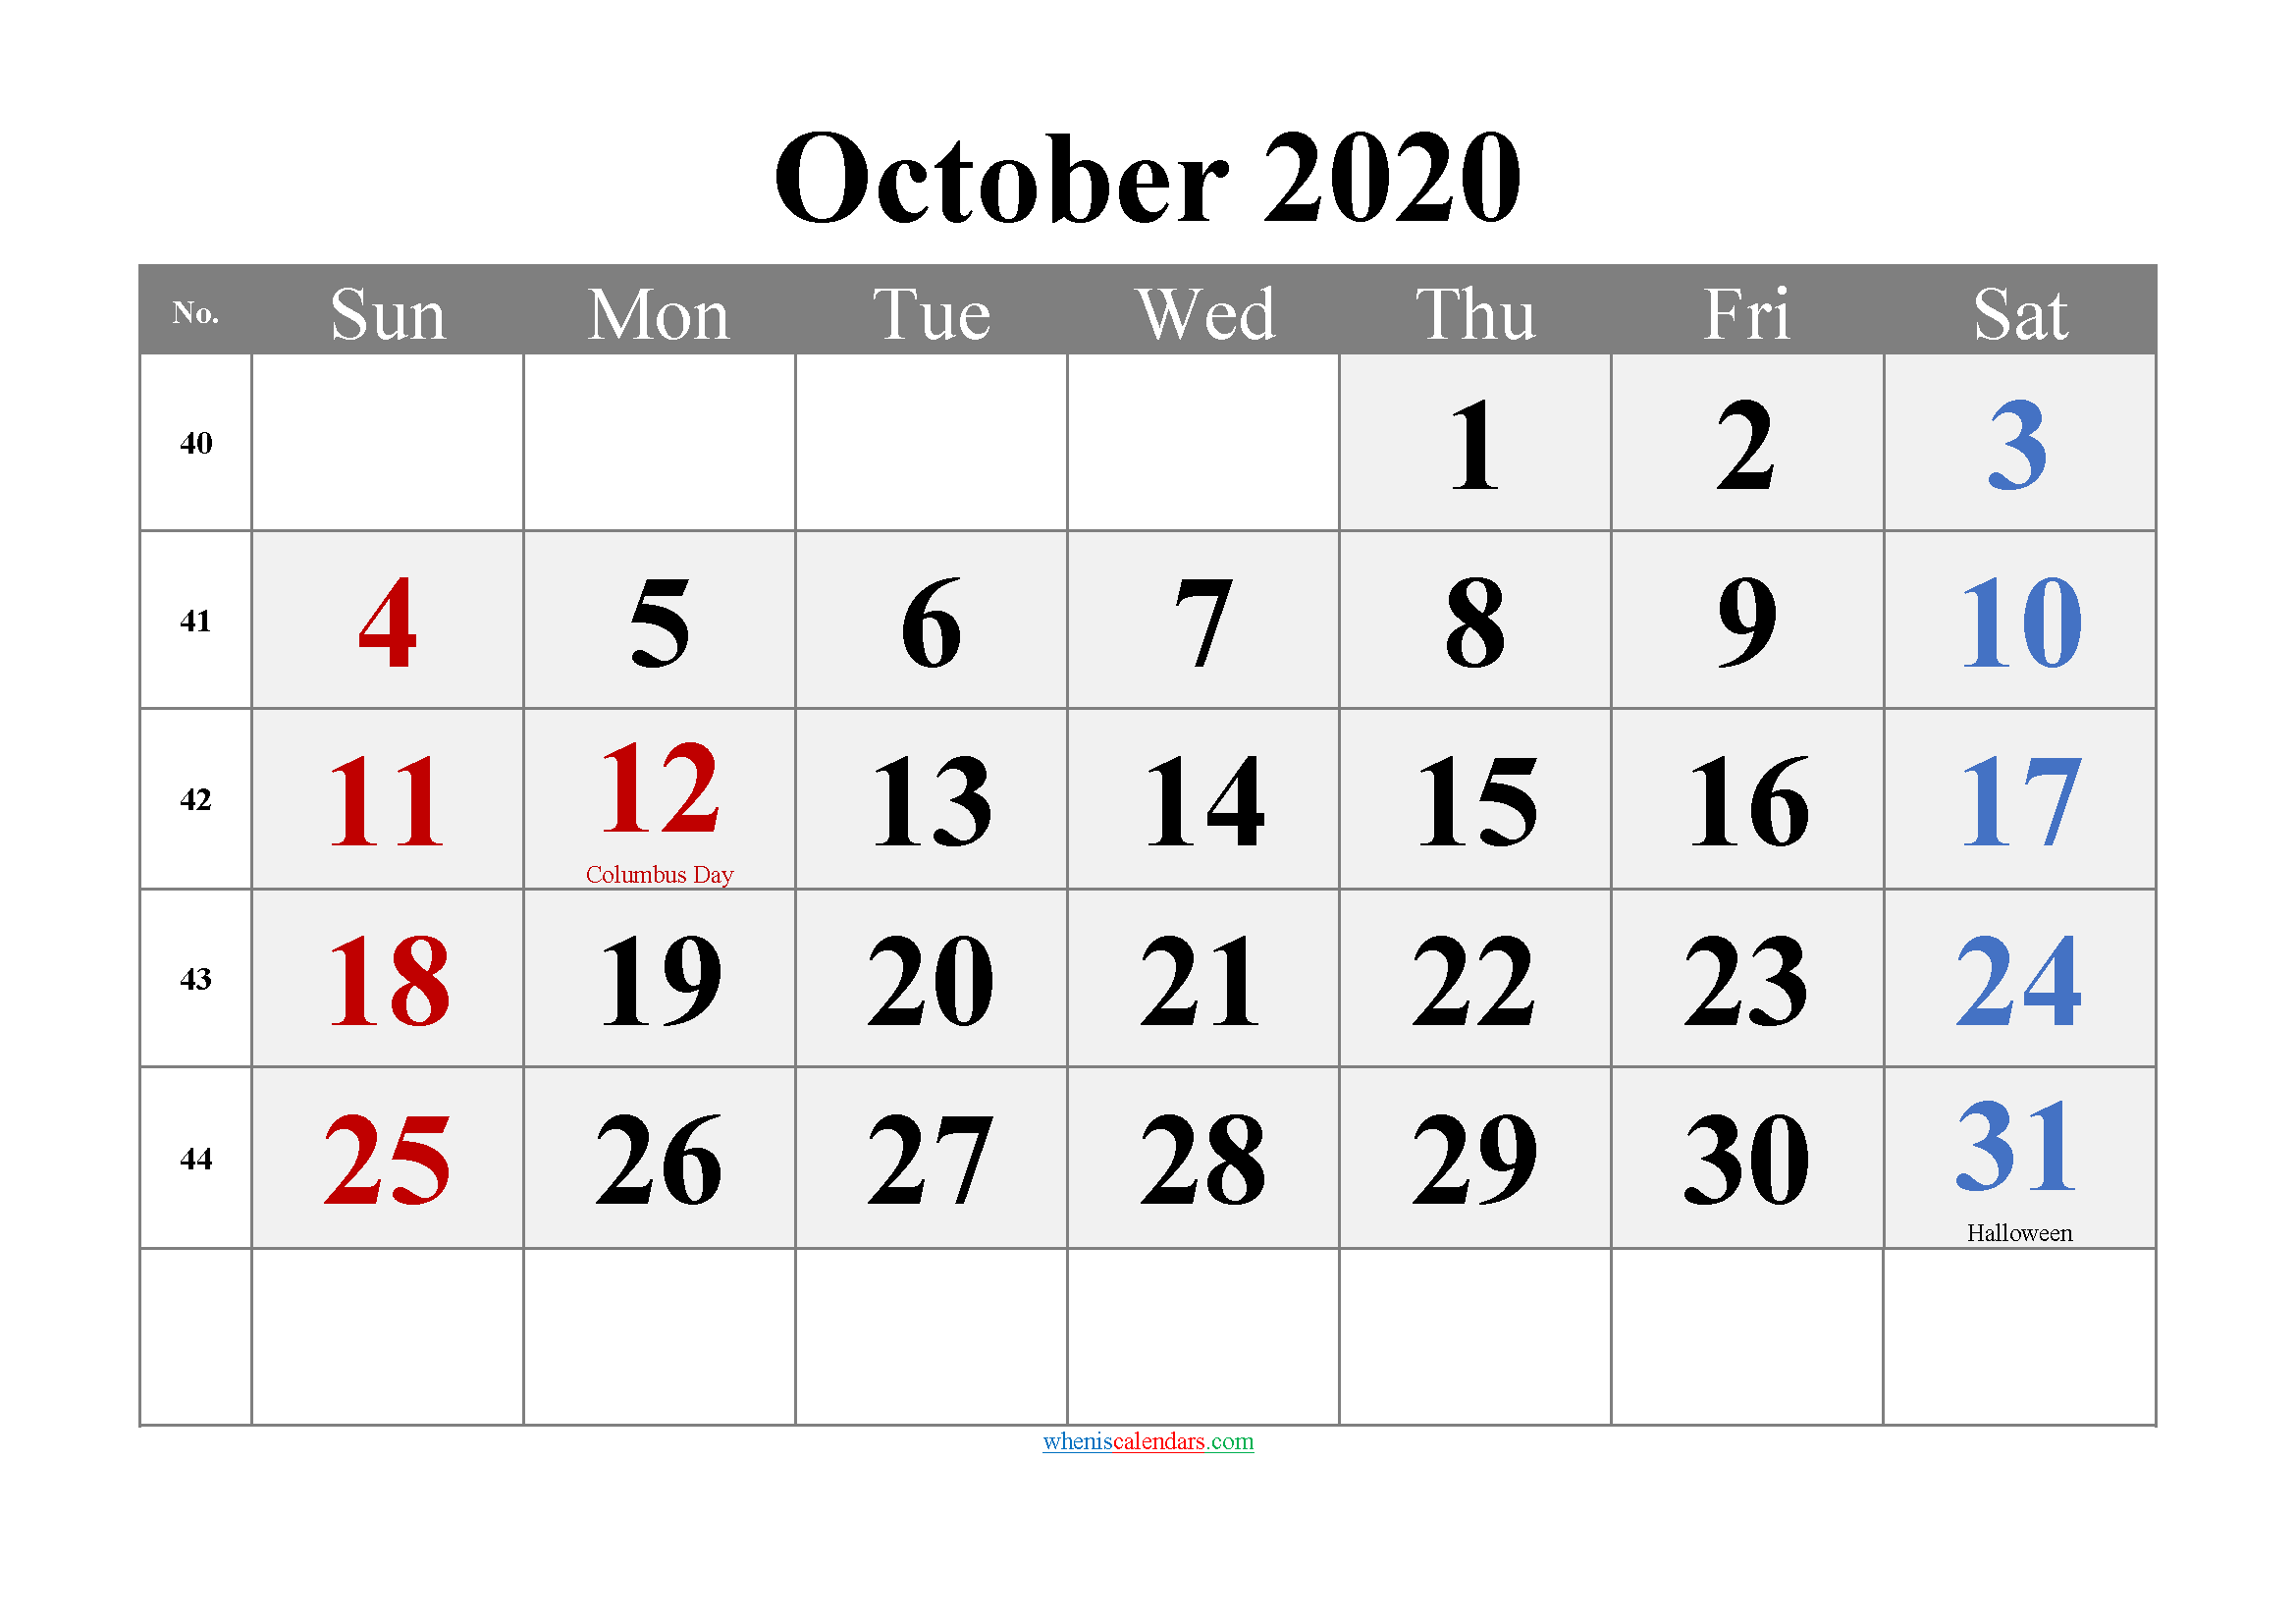 October 2020 Printable Calendar with Holidays